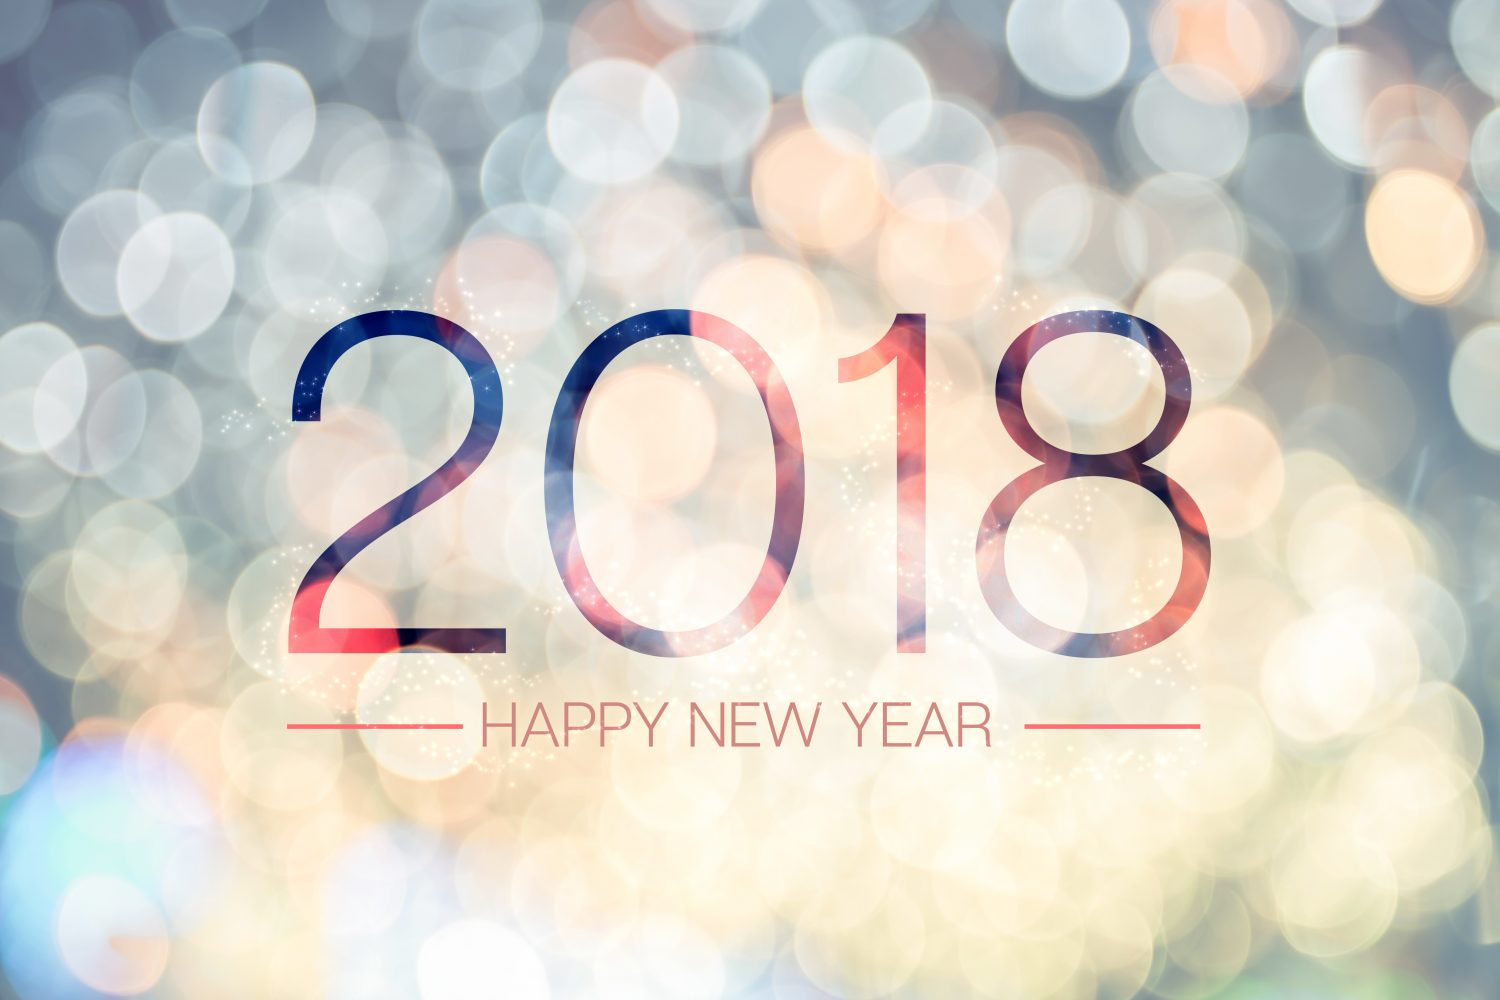 Happy New Year 2018 With Pale Yellow Bokeh Light Sparkling Background,Holiday Greeting Card.